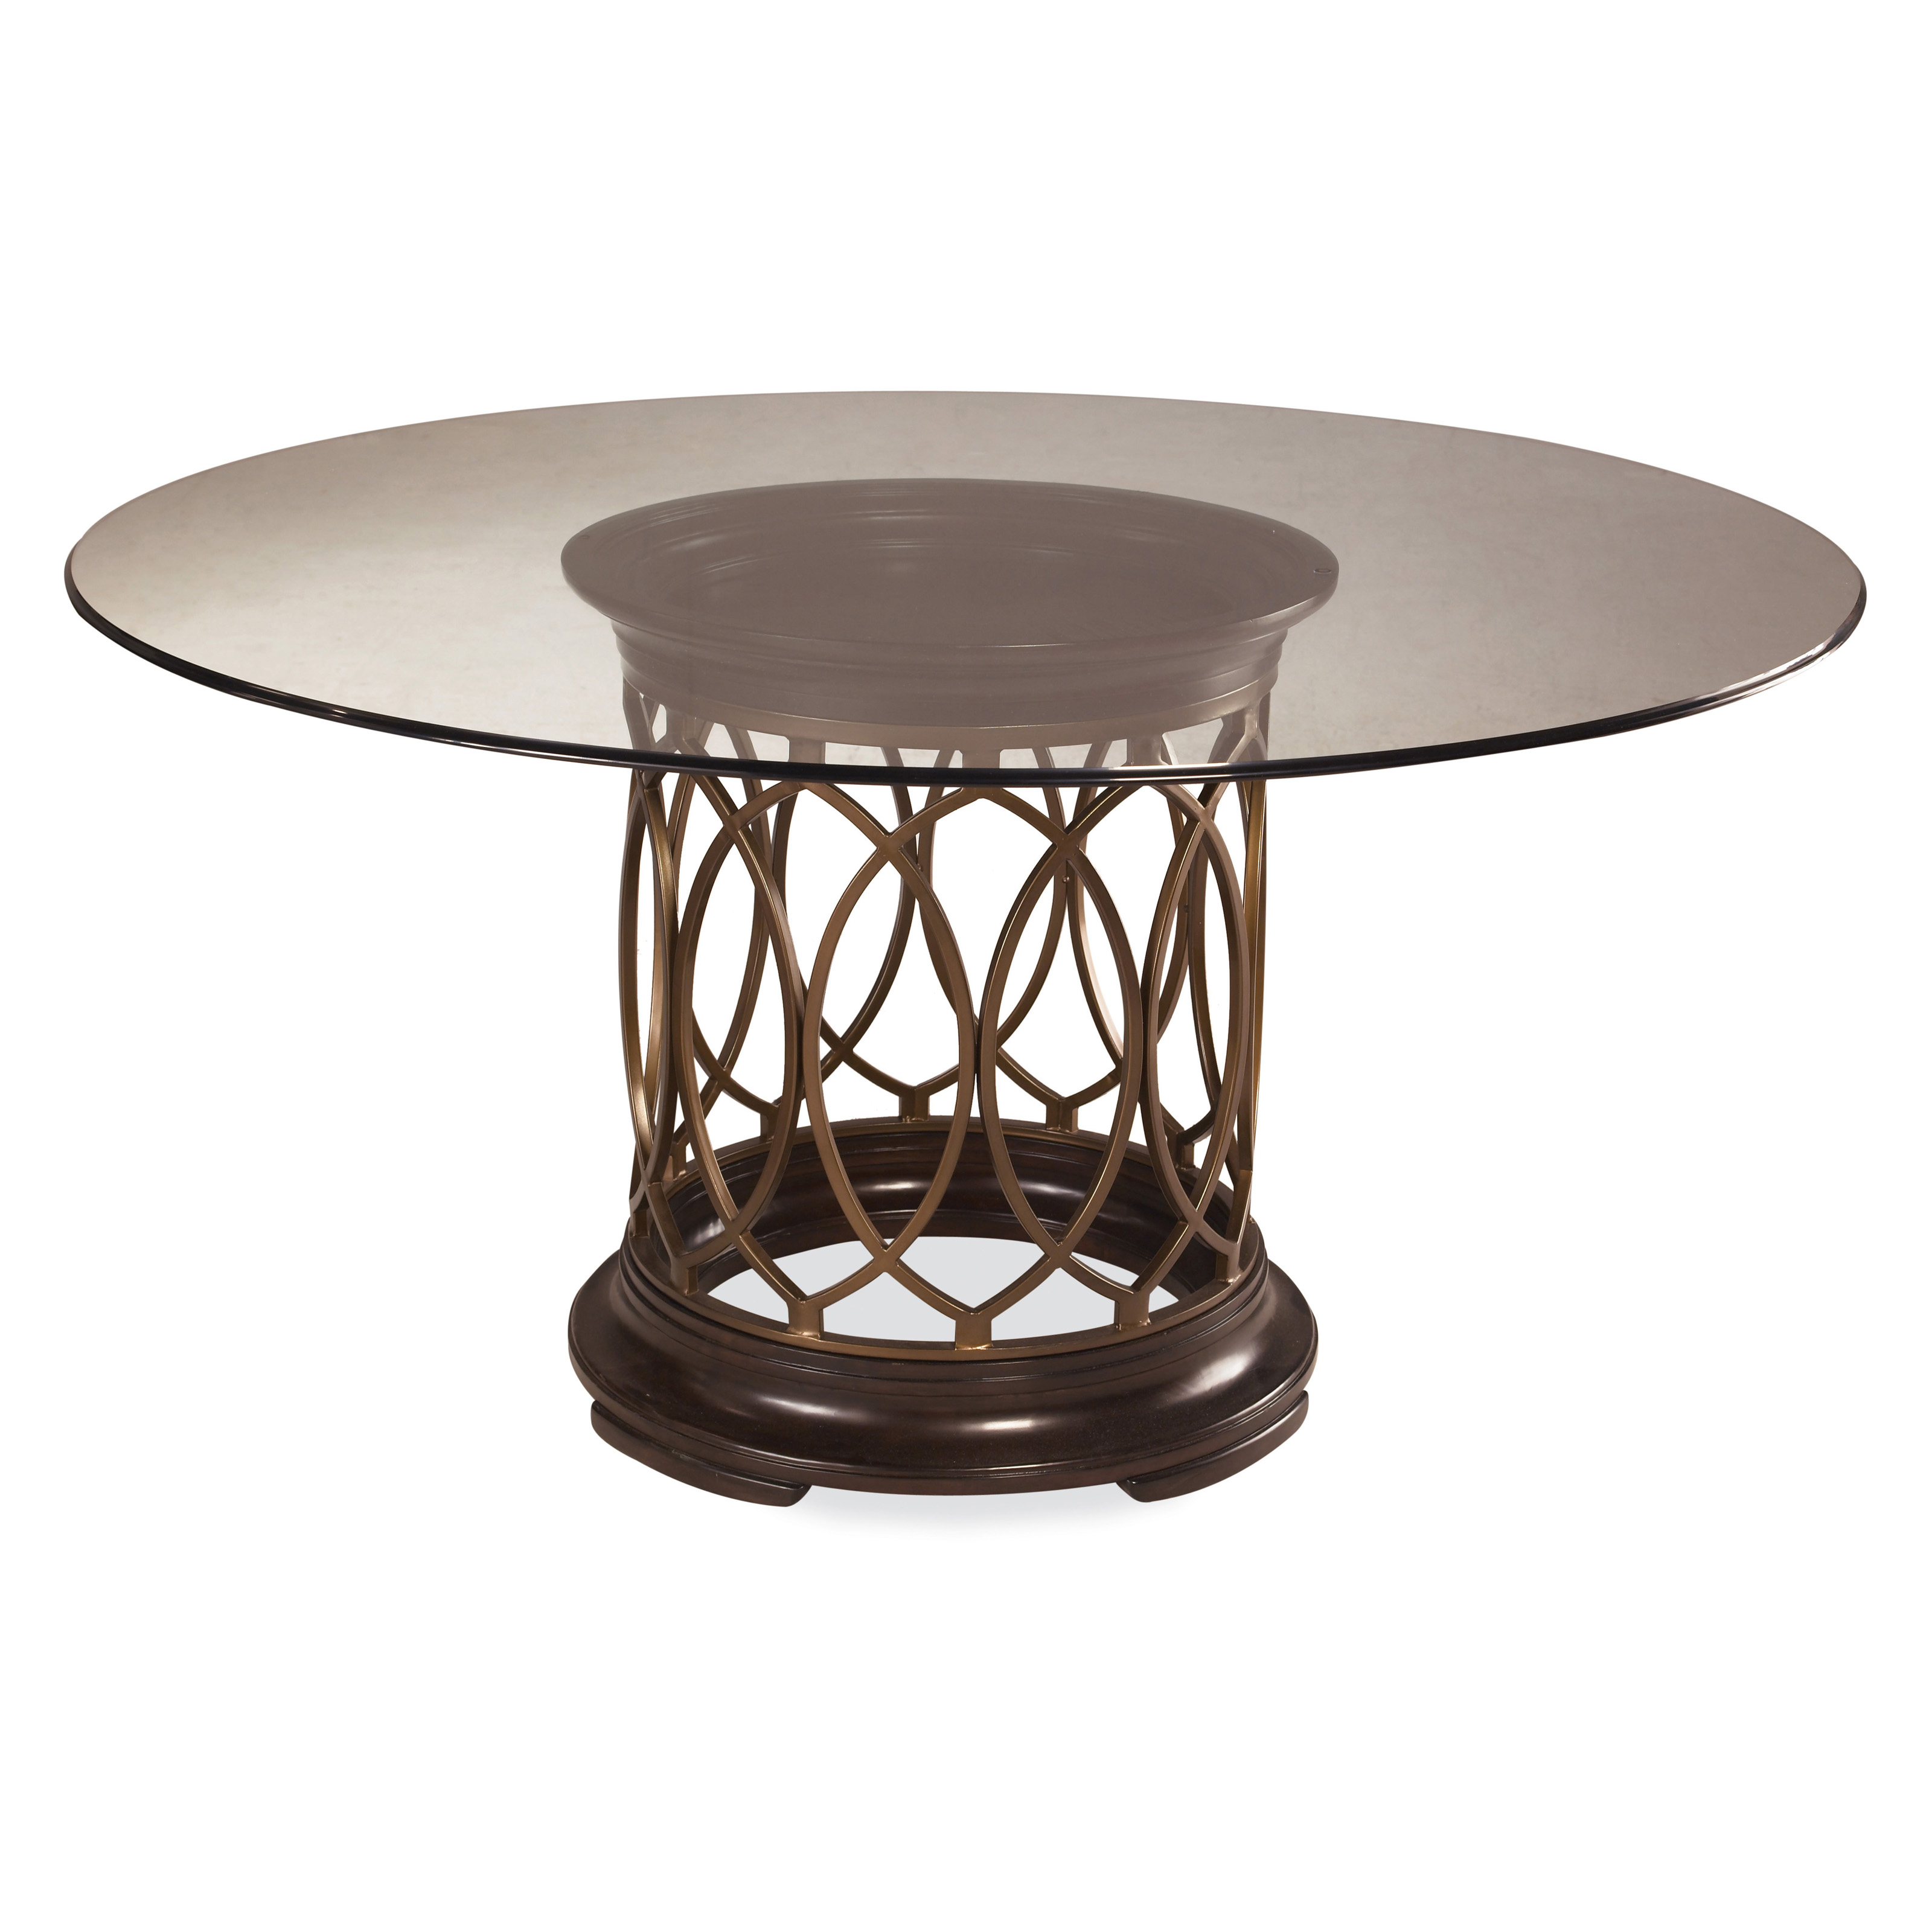 Superbe A.R.T. Furniture Intrigue Glass Top Round Dining Table   Dark Wood With  Maple Stringer Inlay | Hayneedle